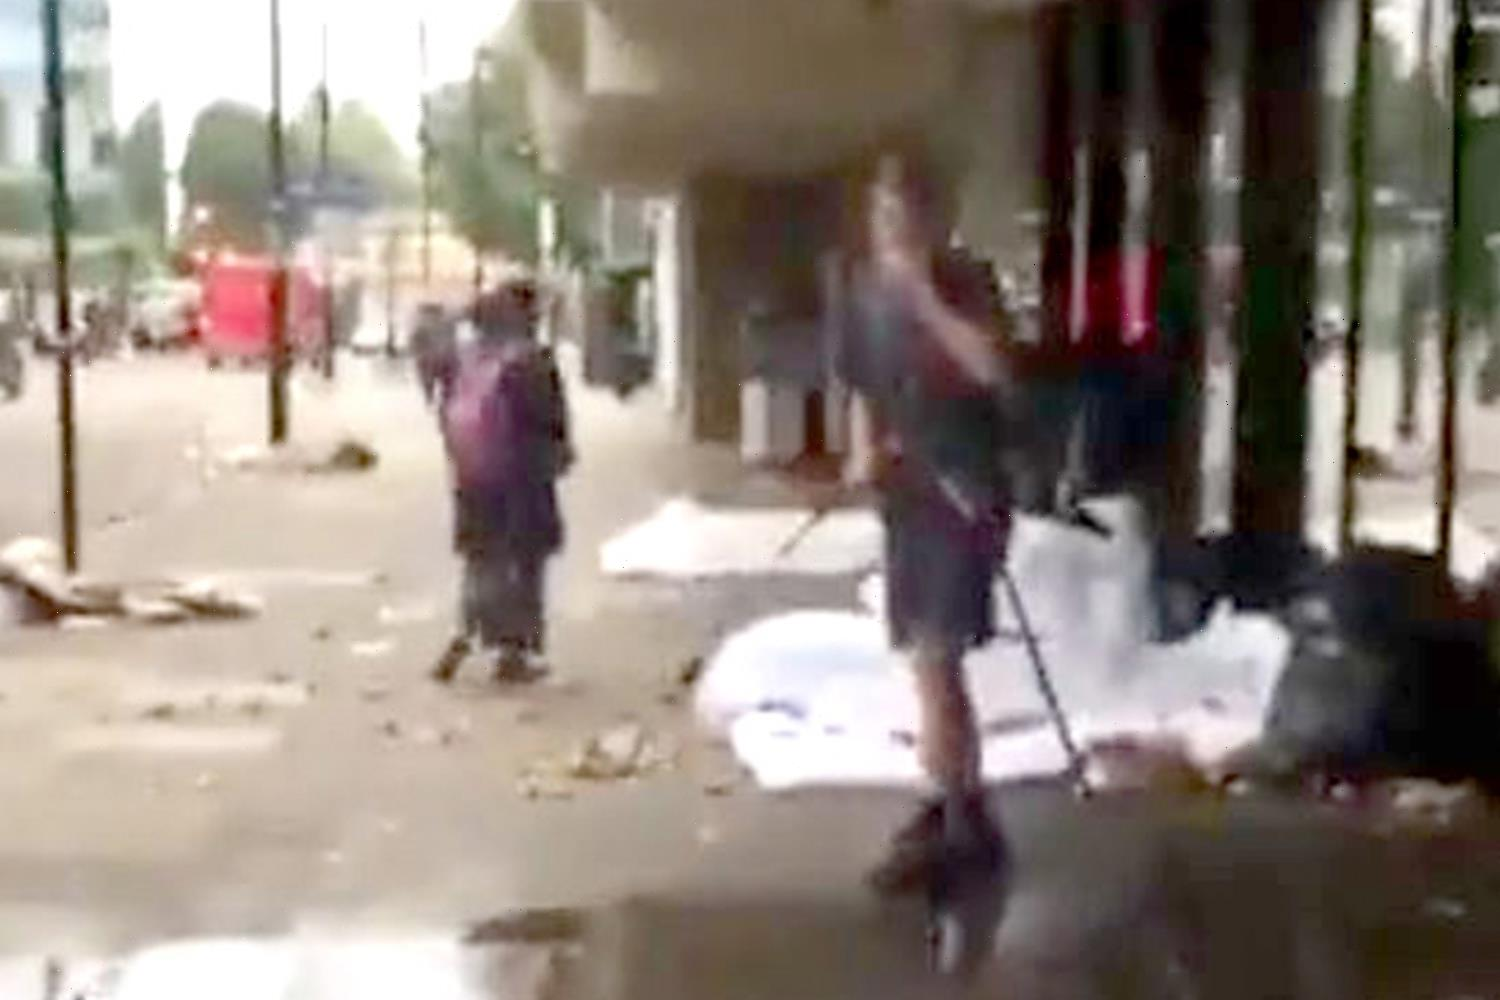 Street cleaner slammed for 'shooting' a homeless person with water from a jet washer while spraying the pavement